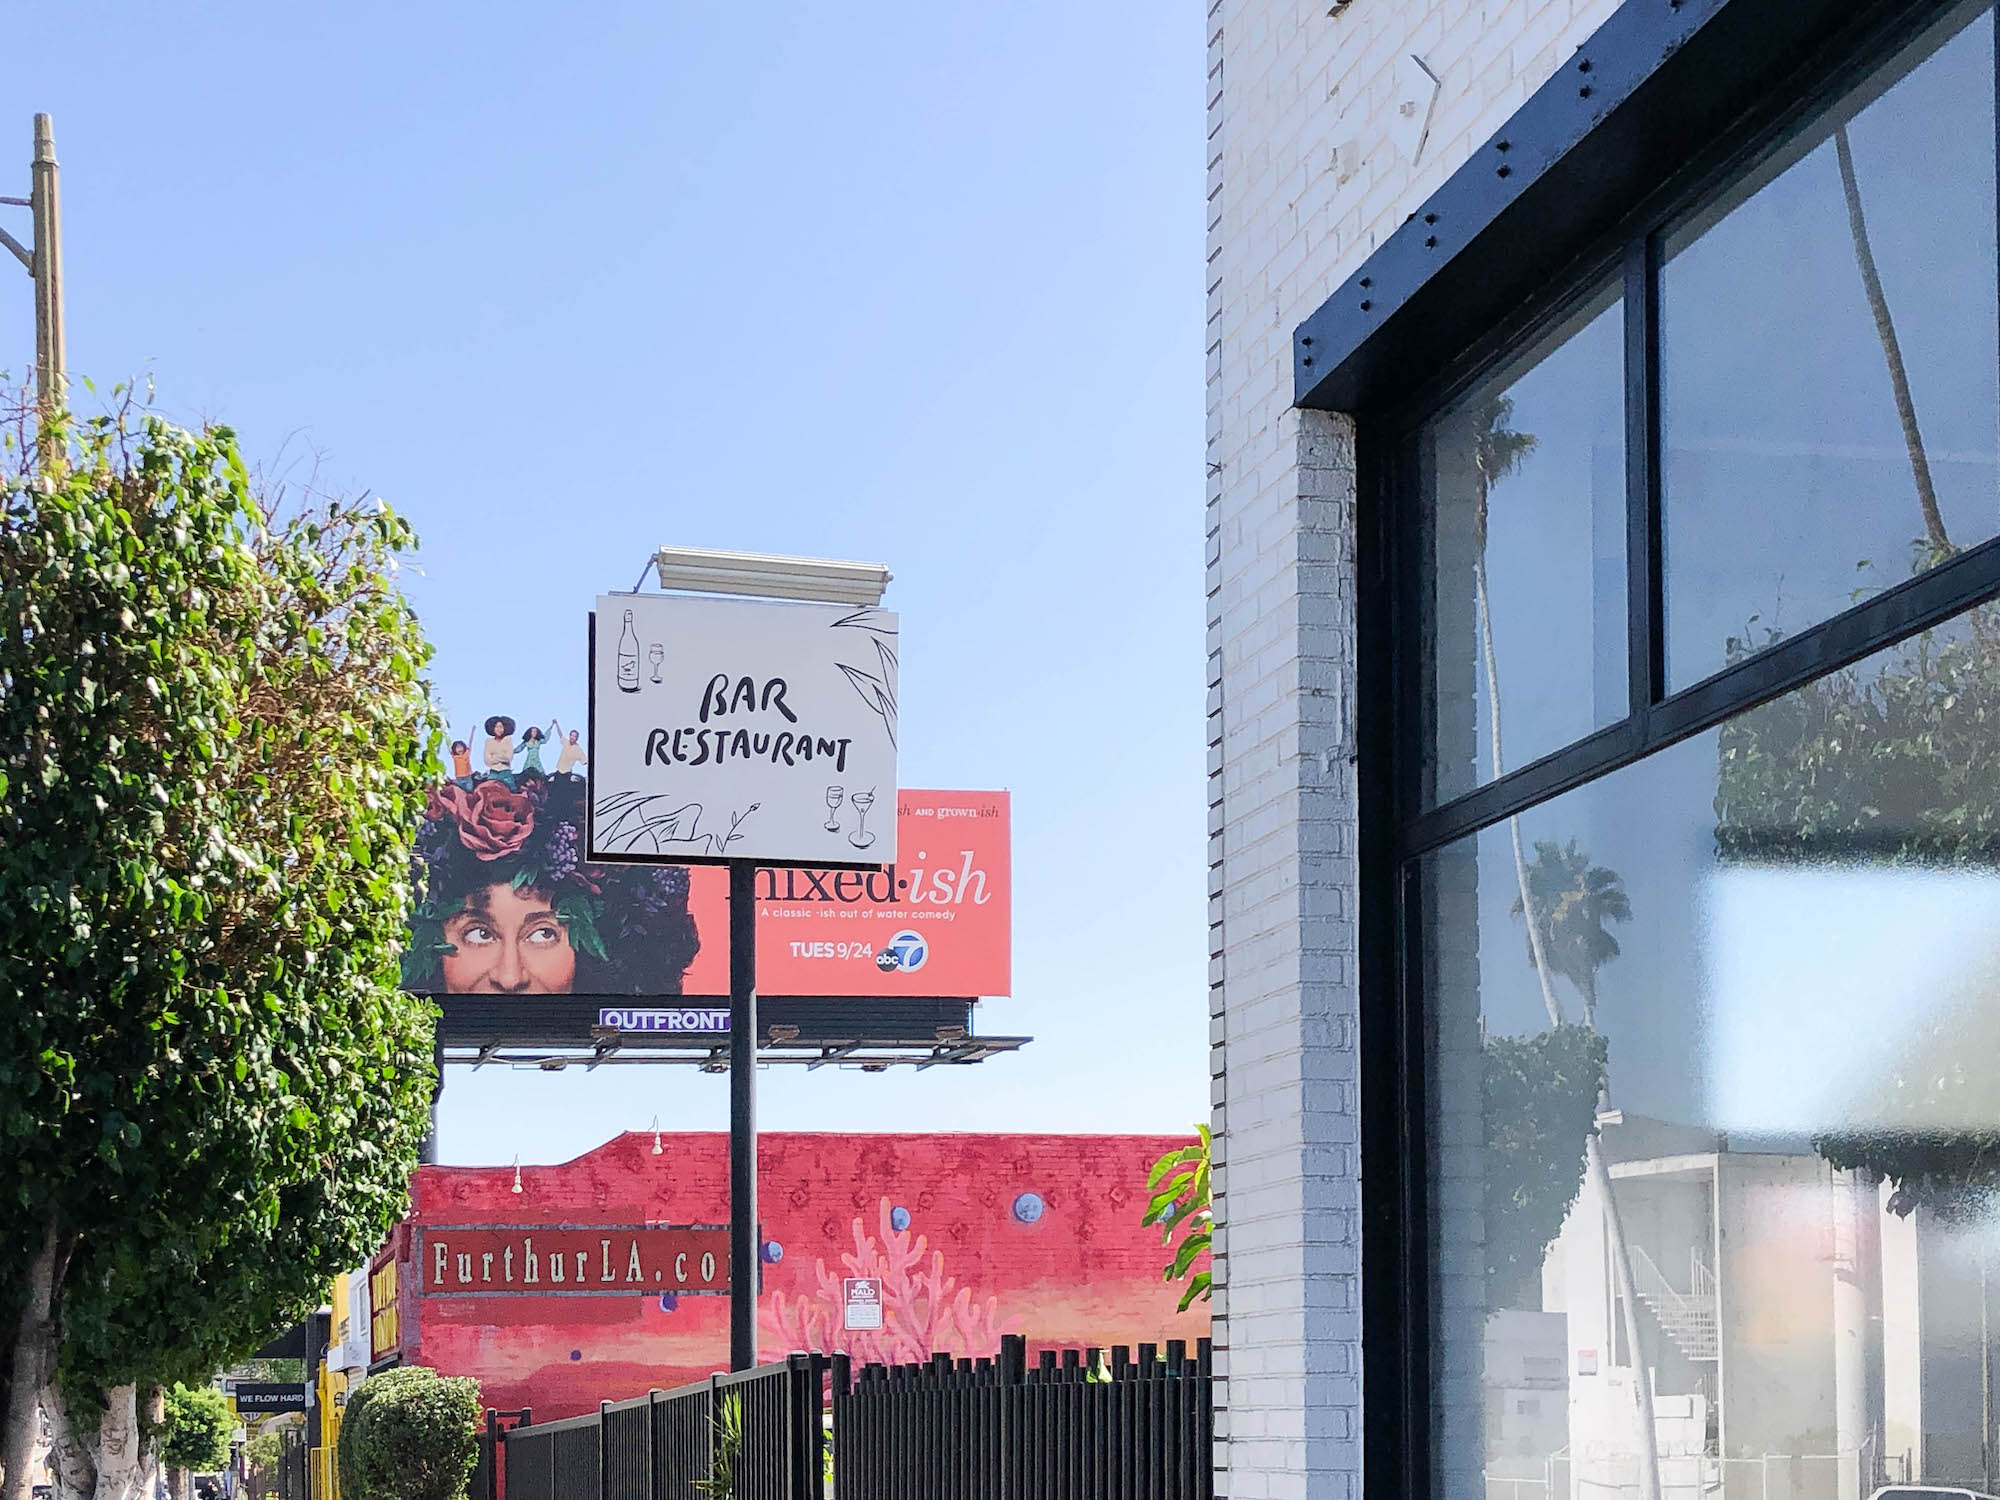 Signage for a place called Bar Restaurant on a sunny day in Los Angeles.